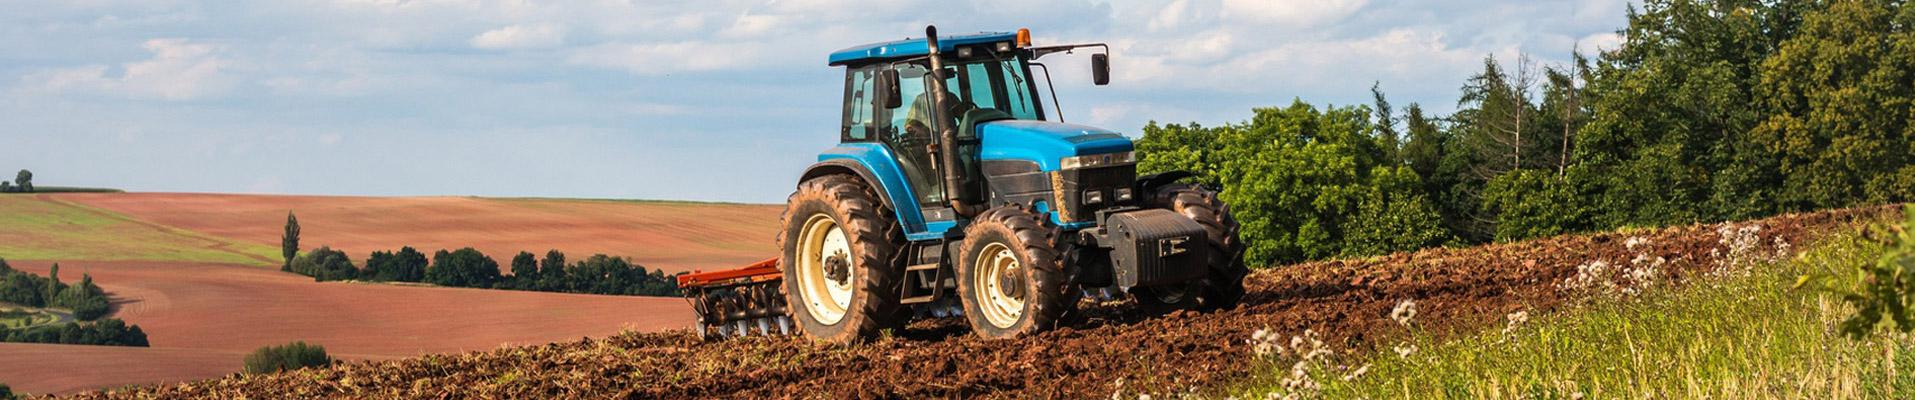 Tractor Image for slider on front page